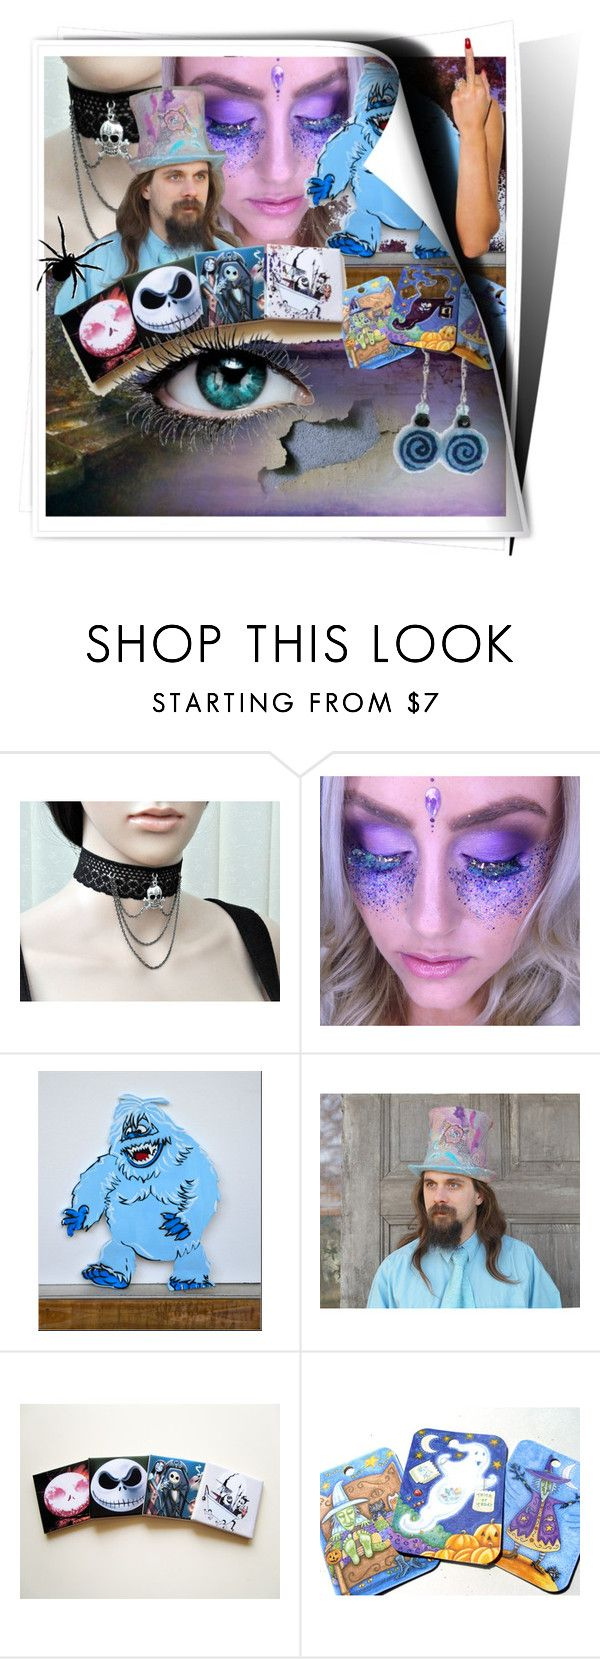 """Halloween in blue"" by canisartstudio ❤ liked on Polyvore featuring filcalki, blackpassion, MarudaFelting, TheBohipstian and TerryTiles2014"